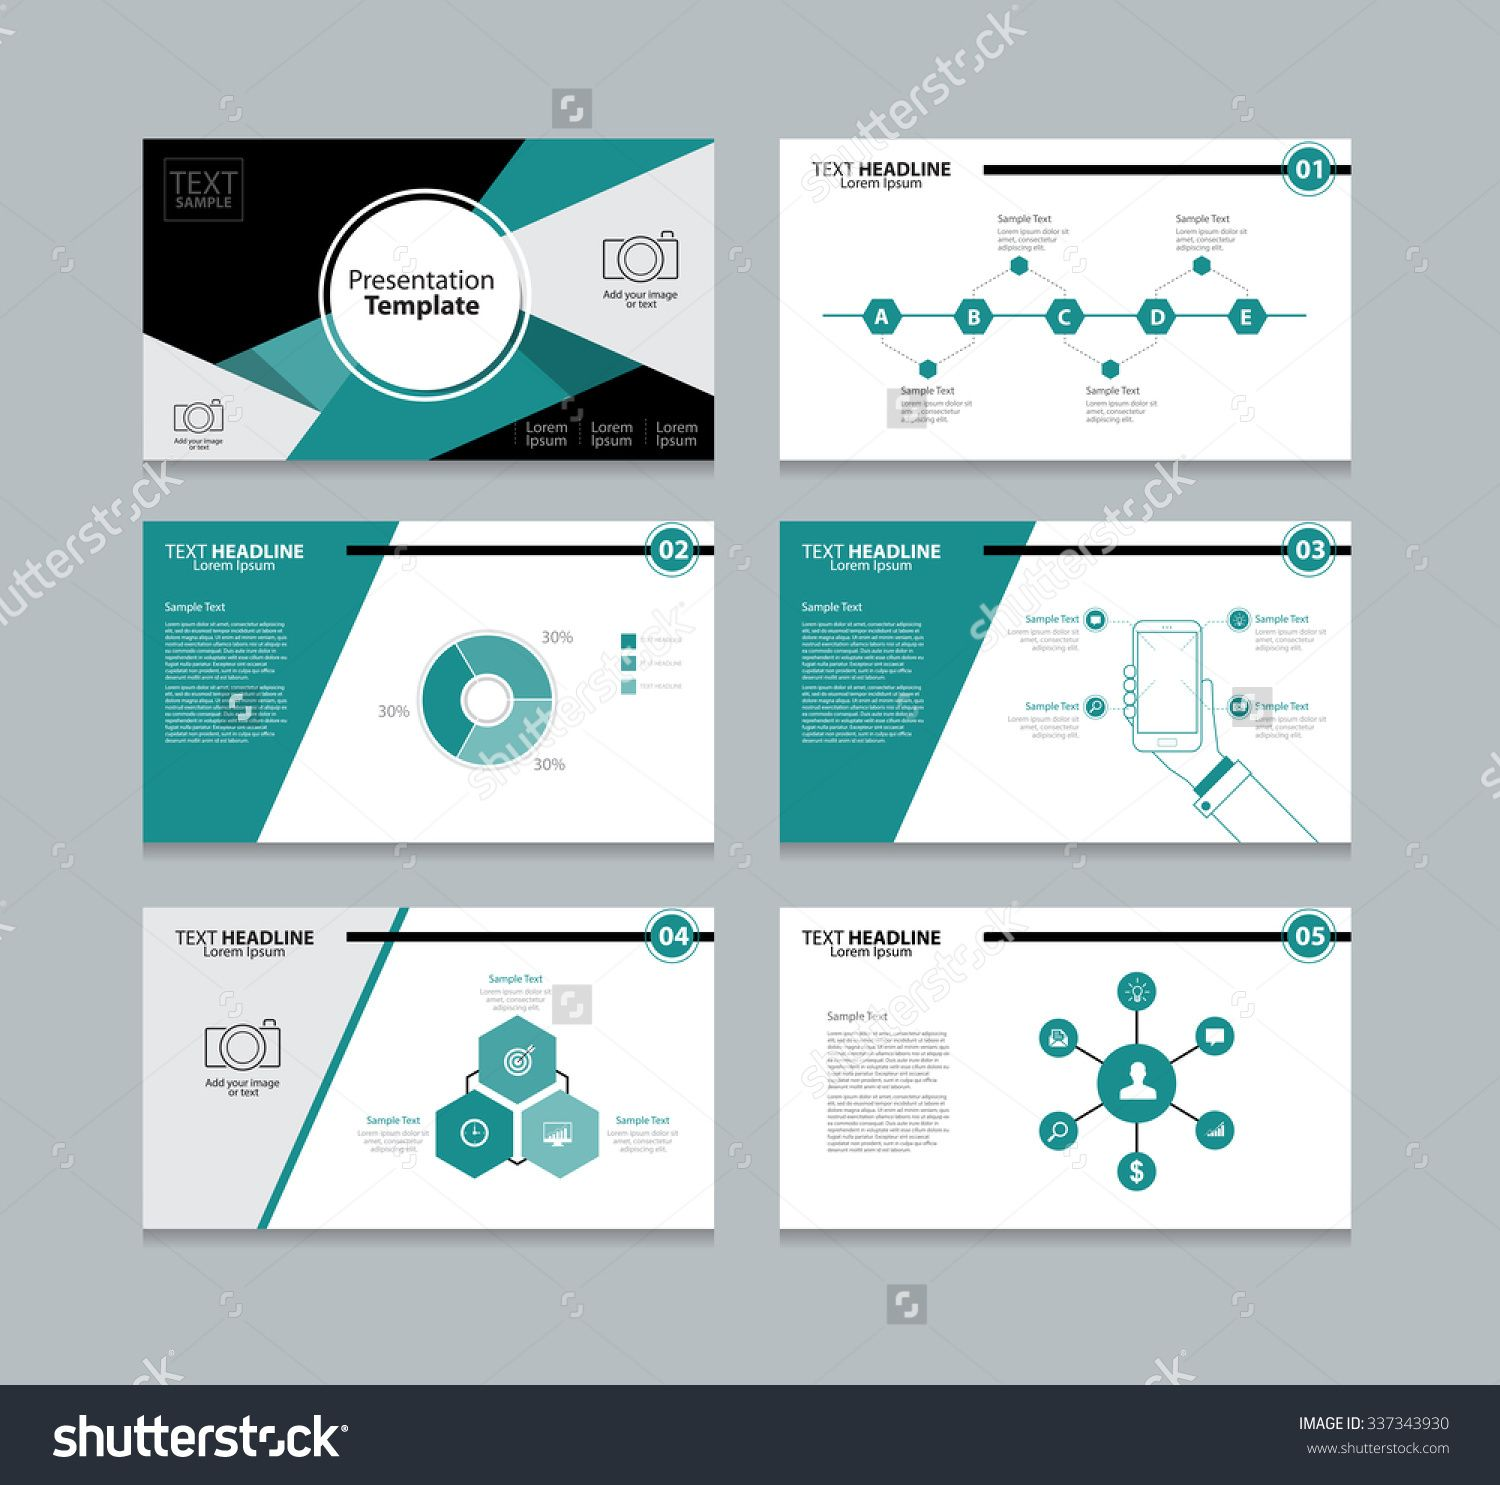 ppt slides background design